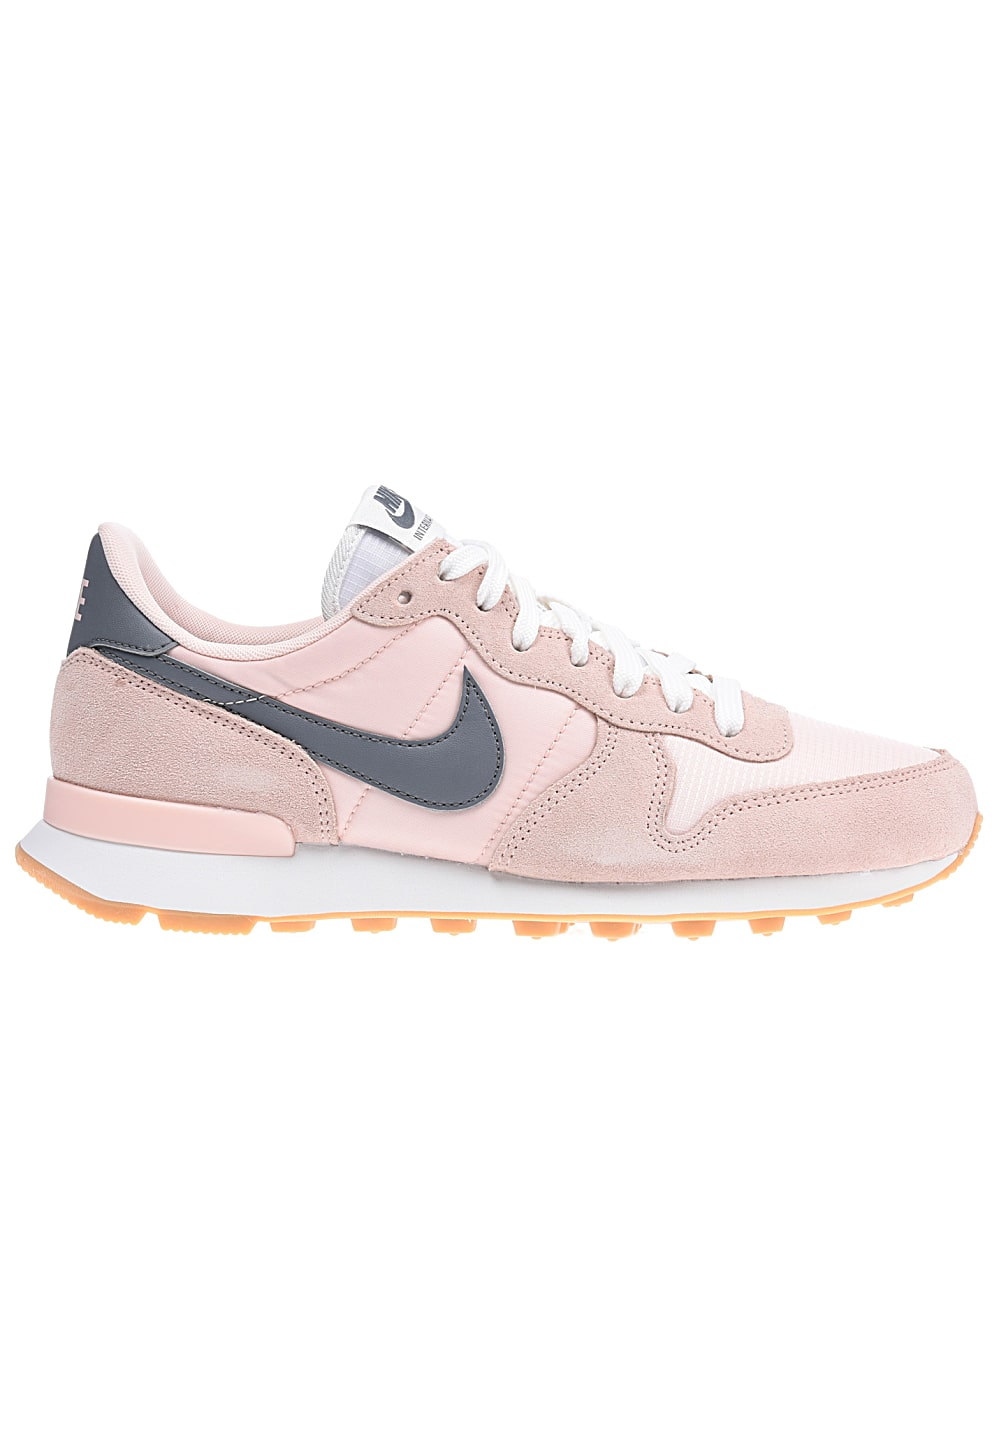 1a535824d44d1 ... usa nike sportswear internationalist sneaker für damen pink planet  14be0 72bed